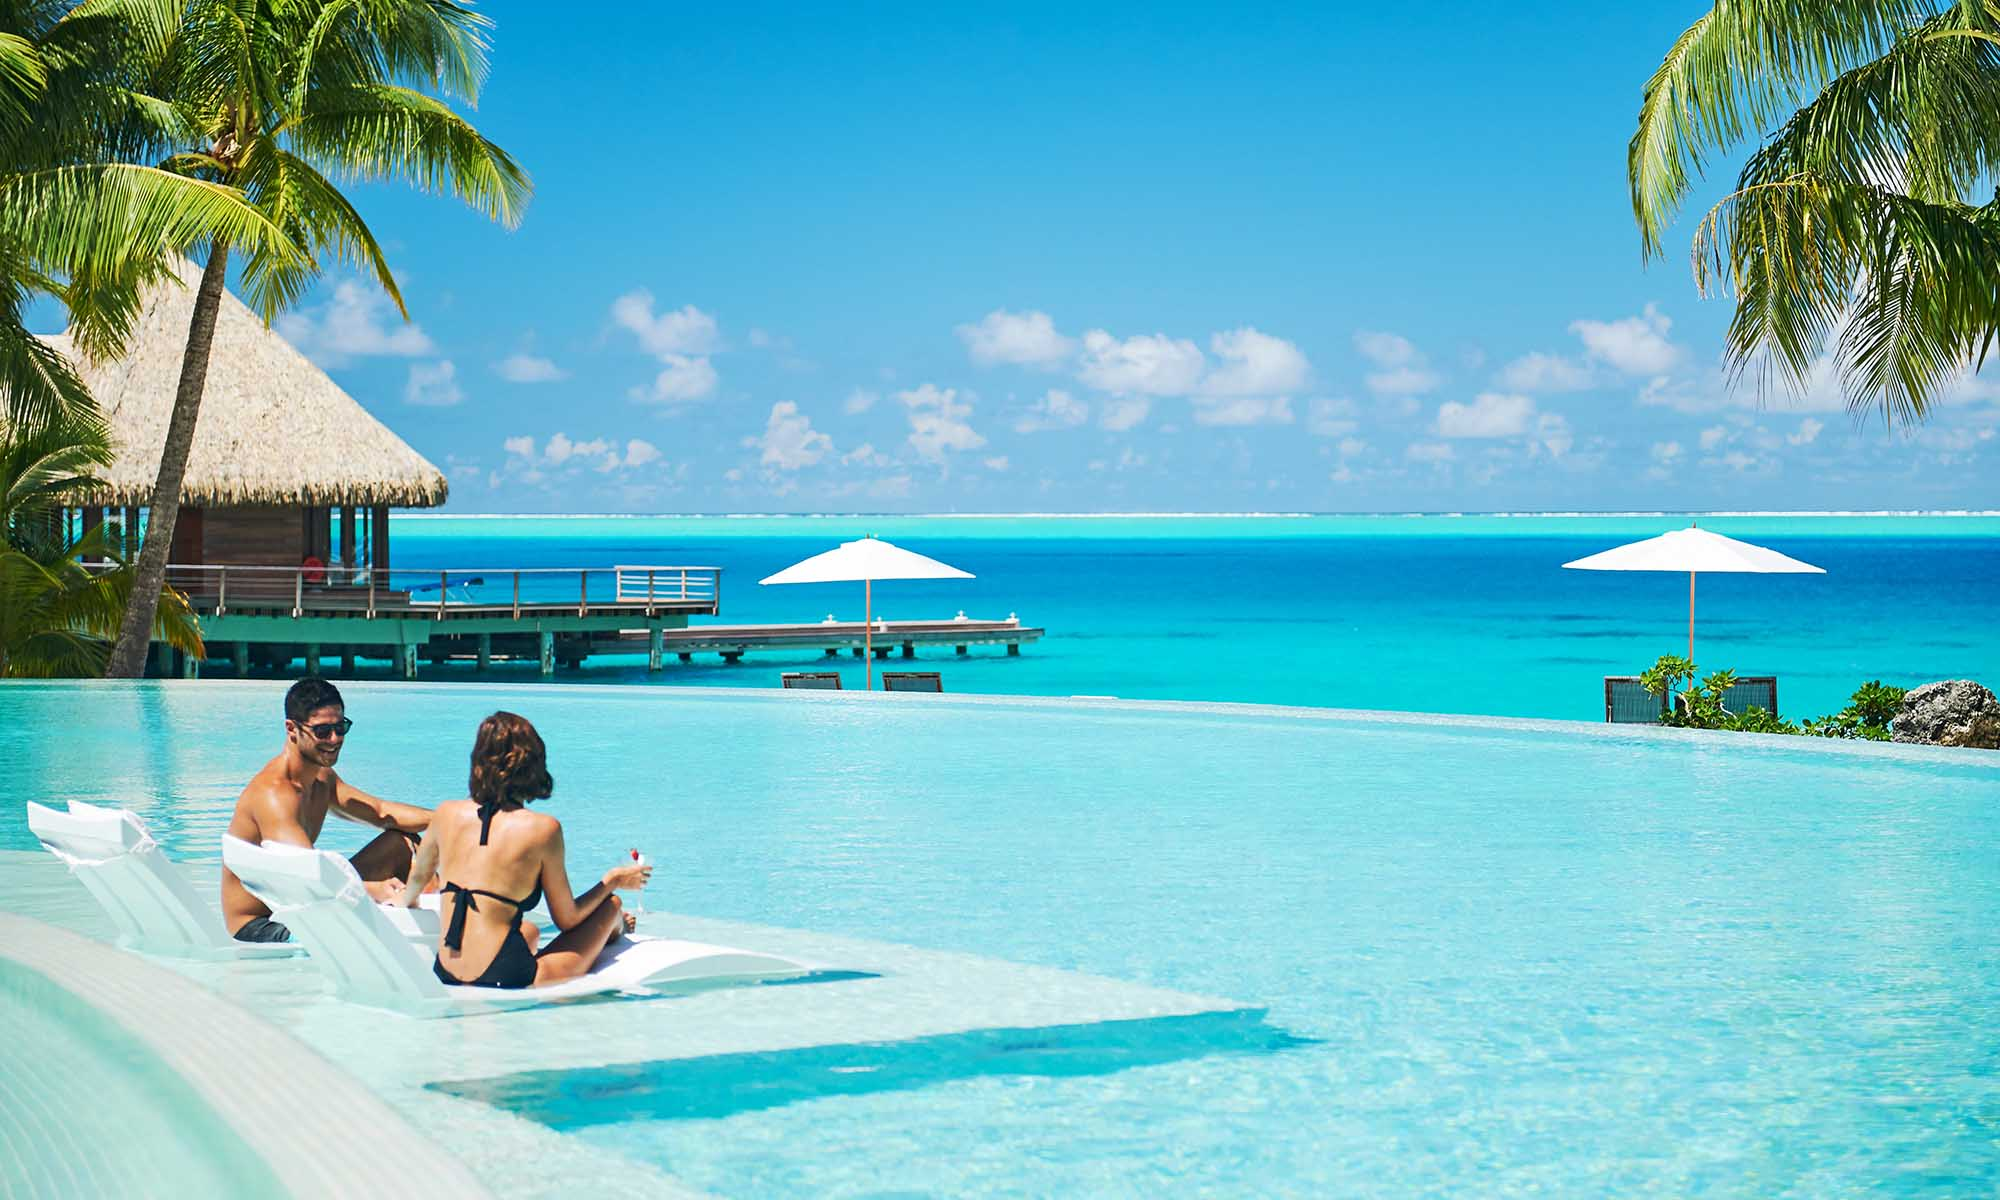 Pool Lounging at the Conrad Bora Bora Nui